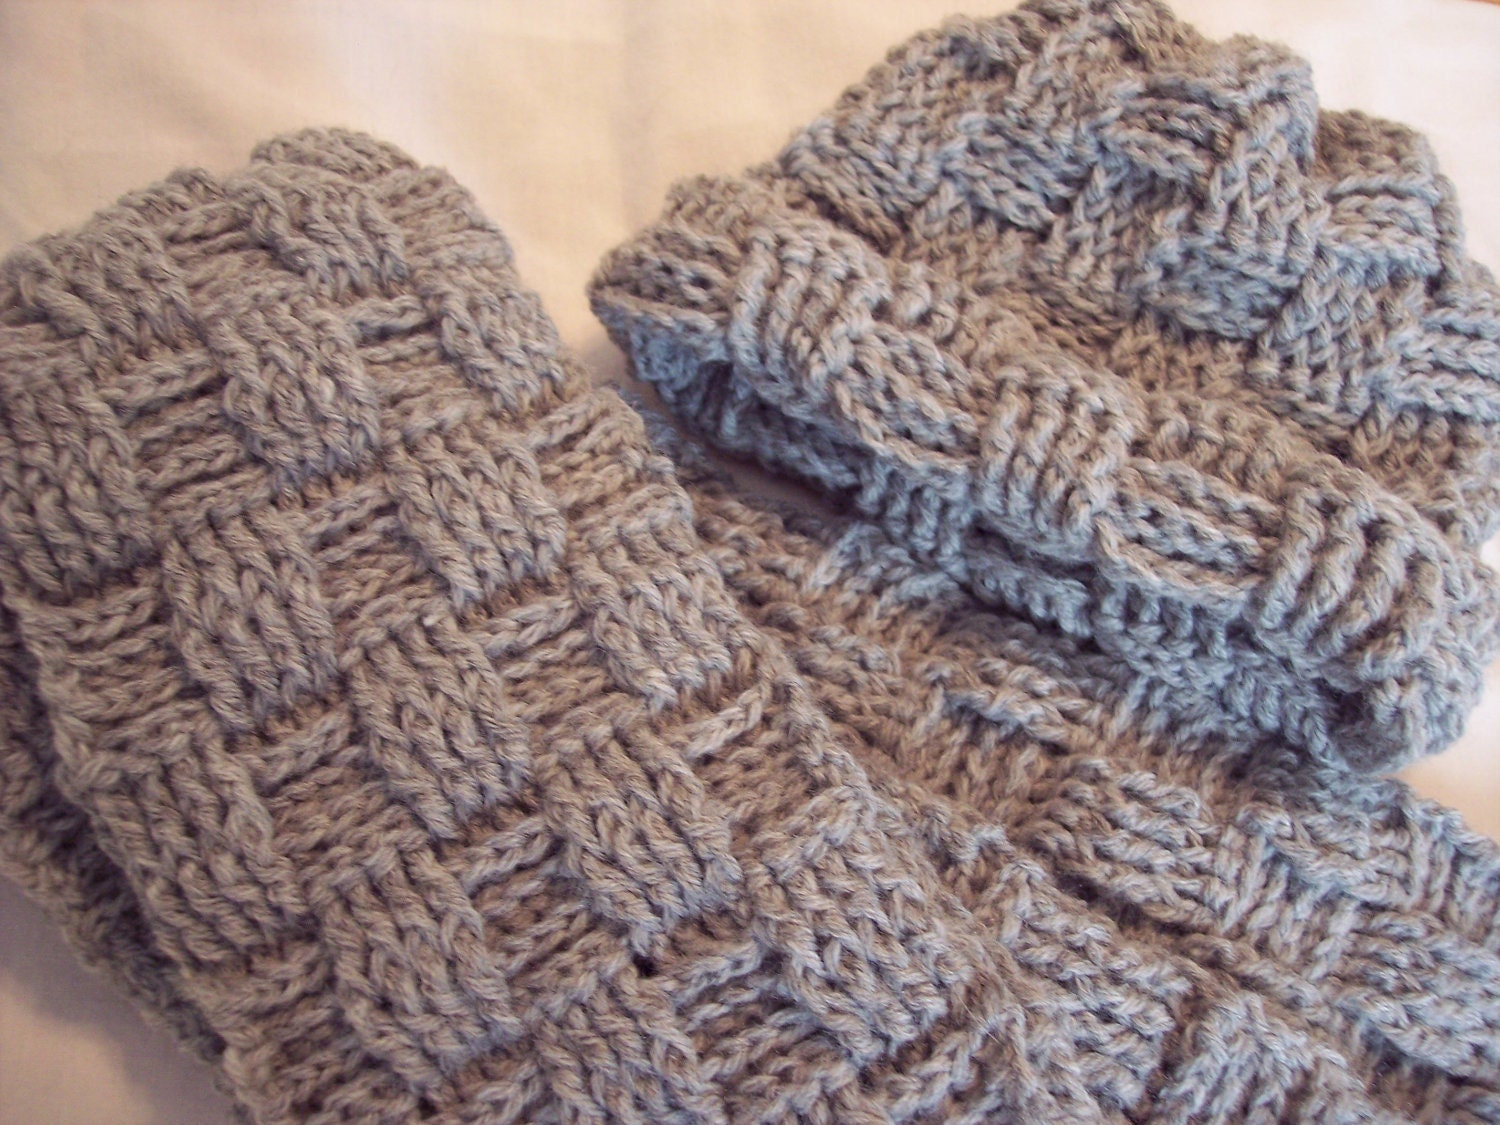 How To Do A Basket Weave Knit : Womens crocheted grey hat and scarf basket weave by